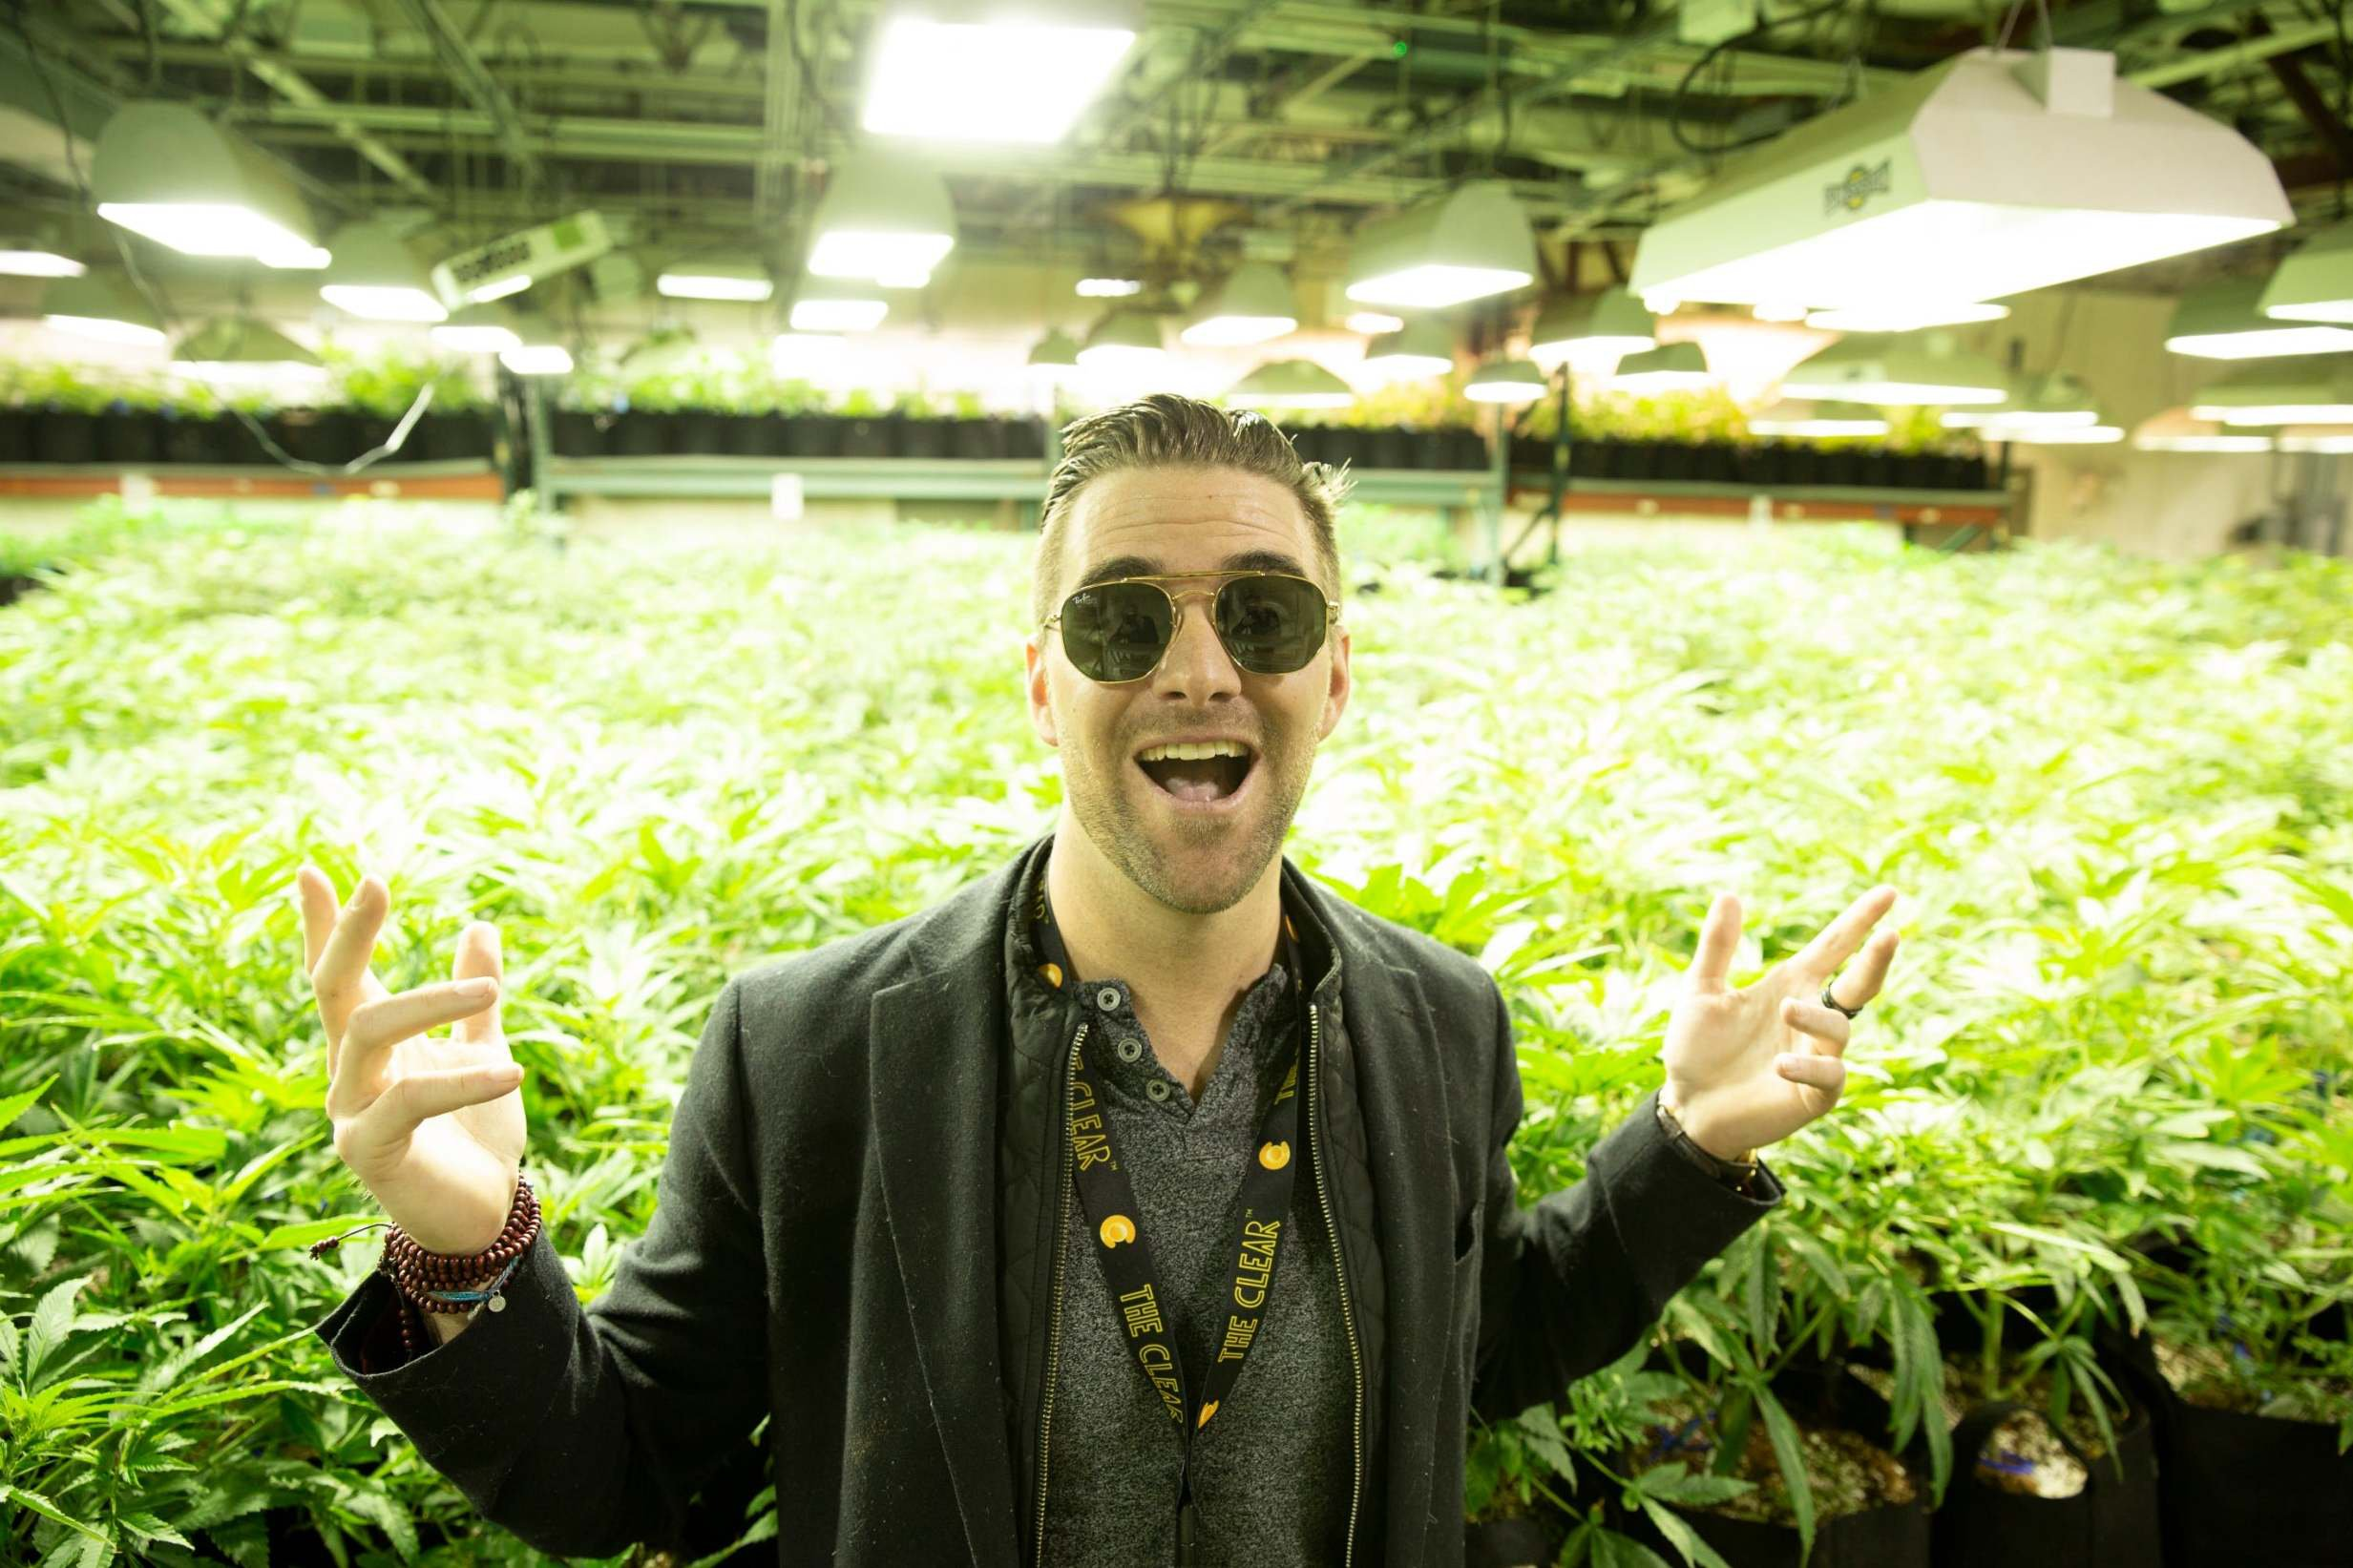 Here's my growhouse: The venture capitalist turned cannabis millionaire